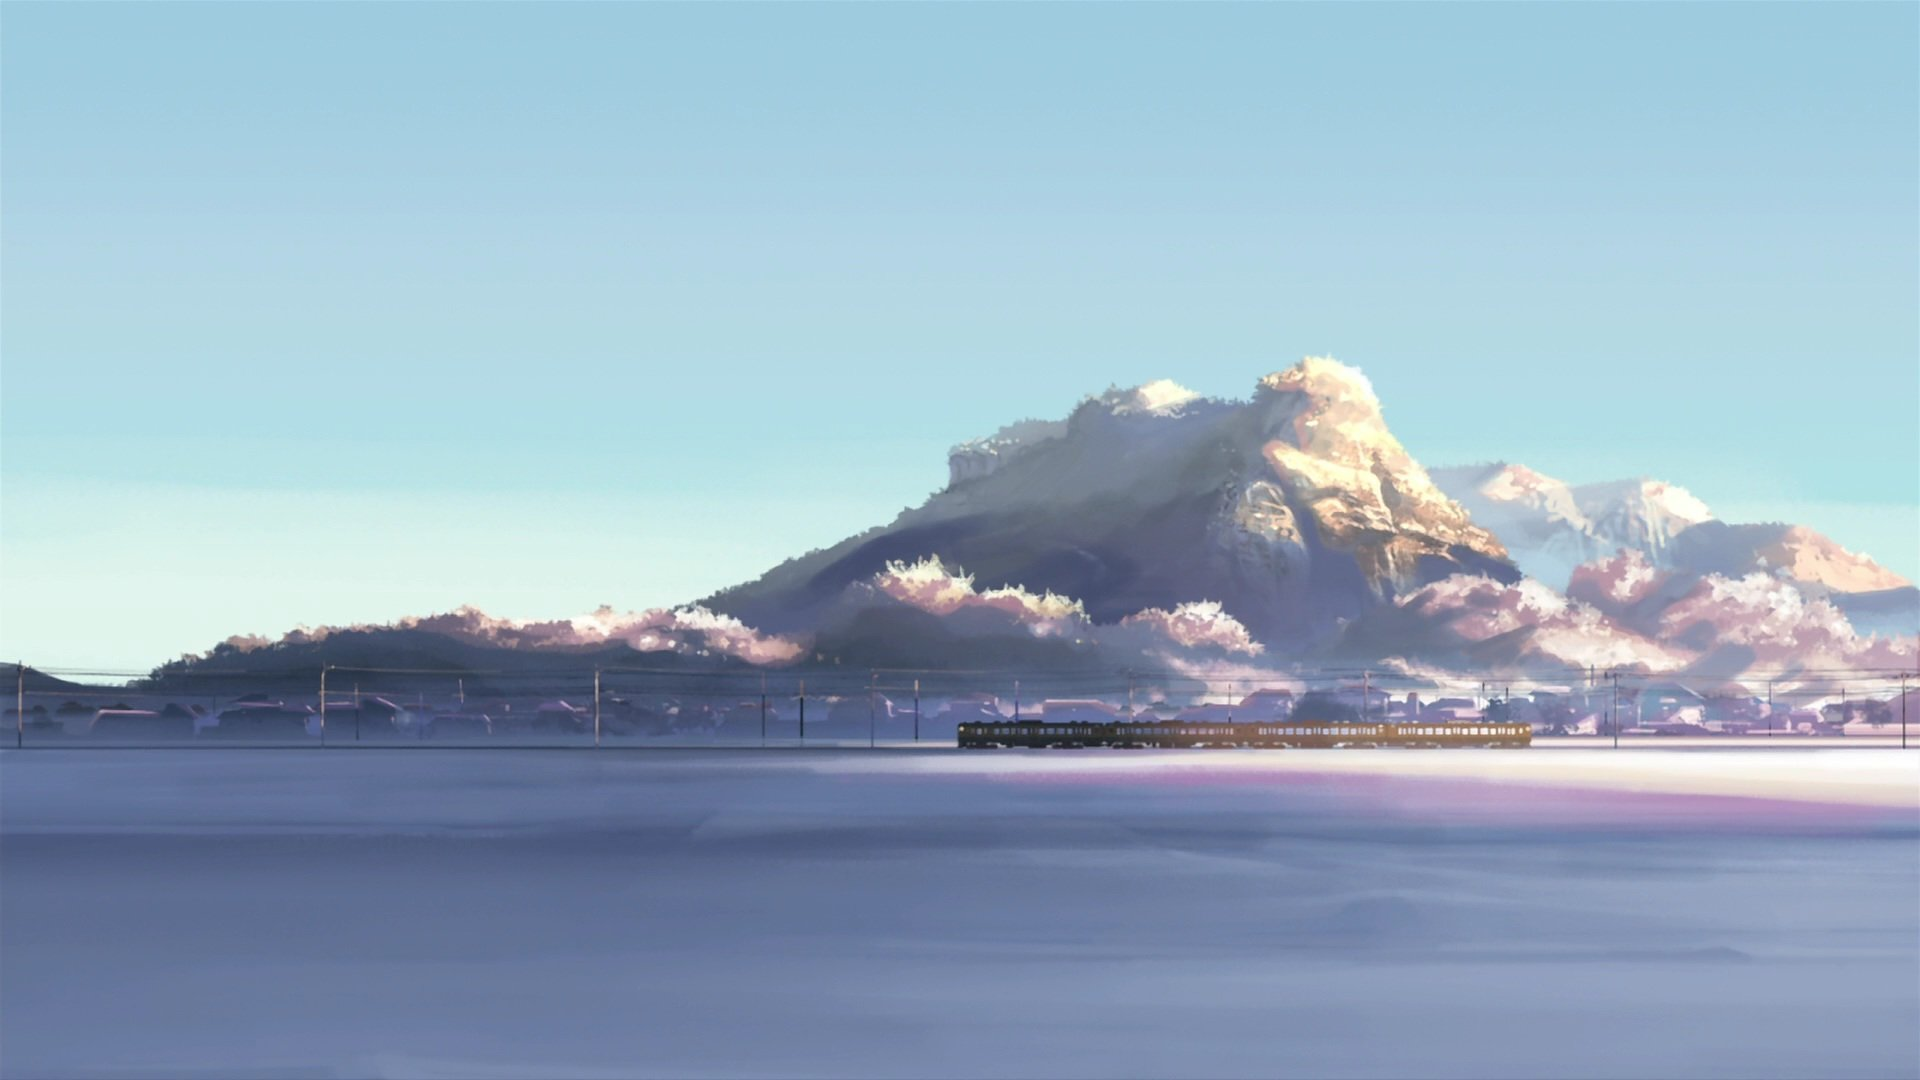 Download hd 1920x1080 5 (cm) Centimeters Per Second computer background ID:90031 for free